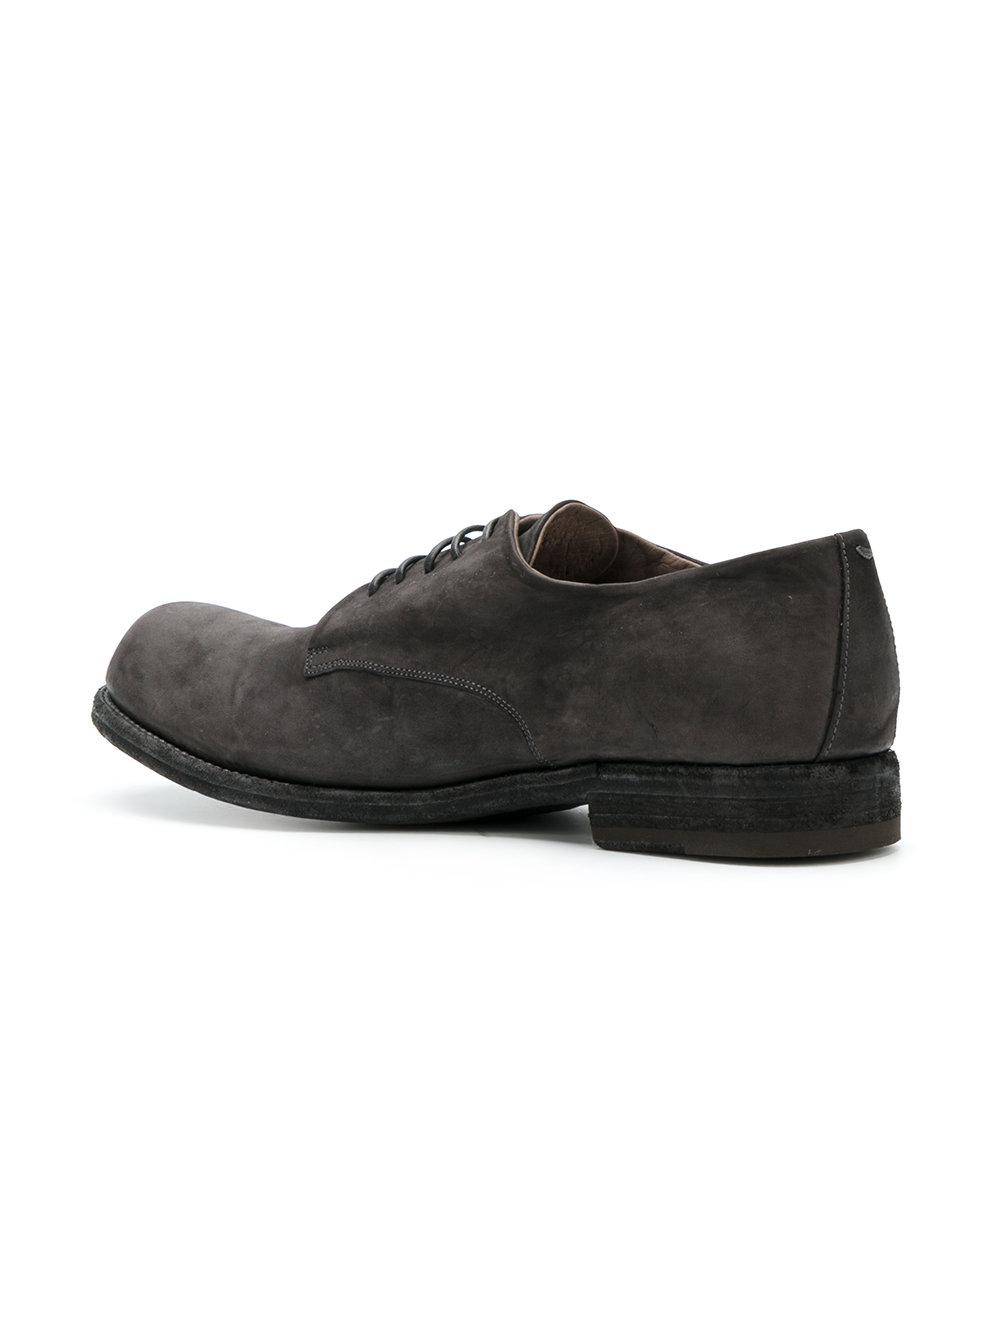 huge discount 79f37 3d1bb officine-creative-grey-Bubble-Derby-Shoes.jpeg